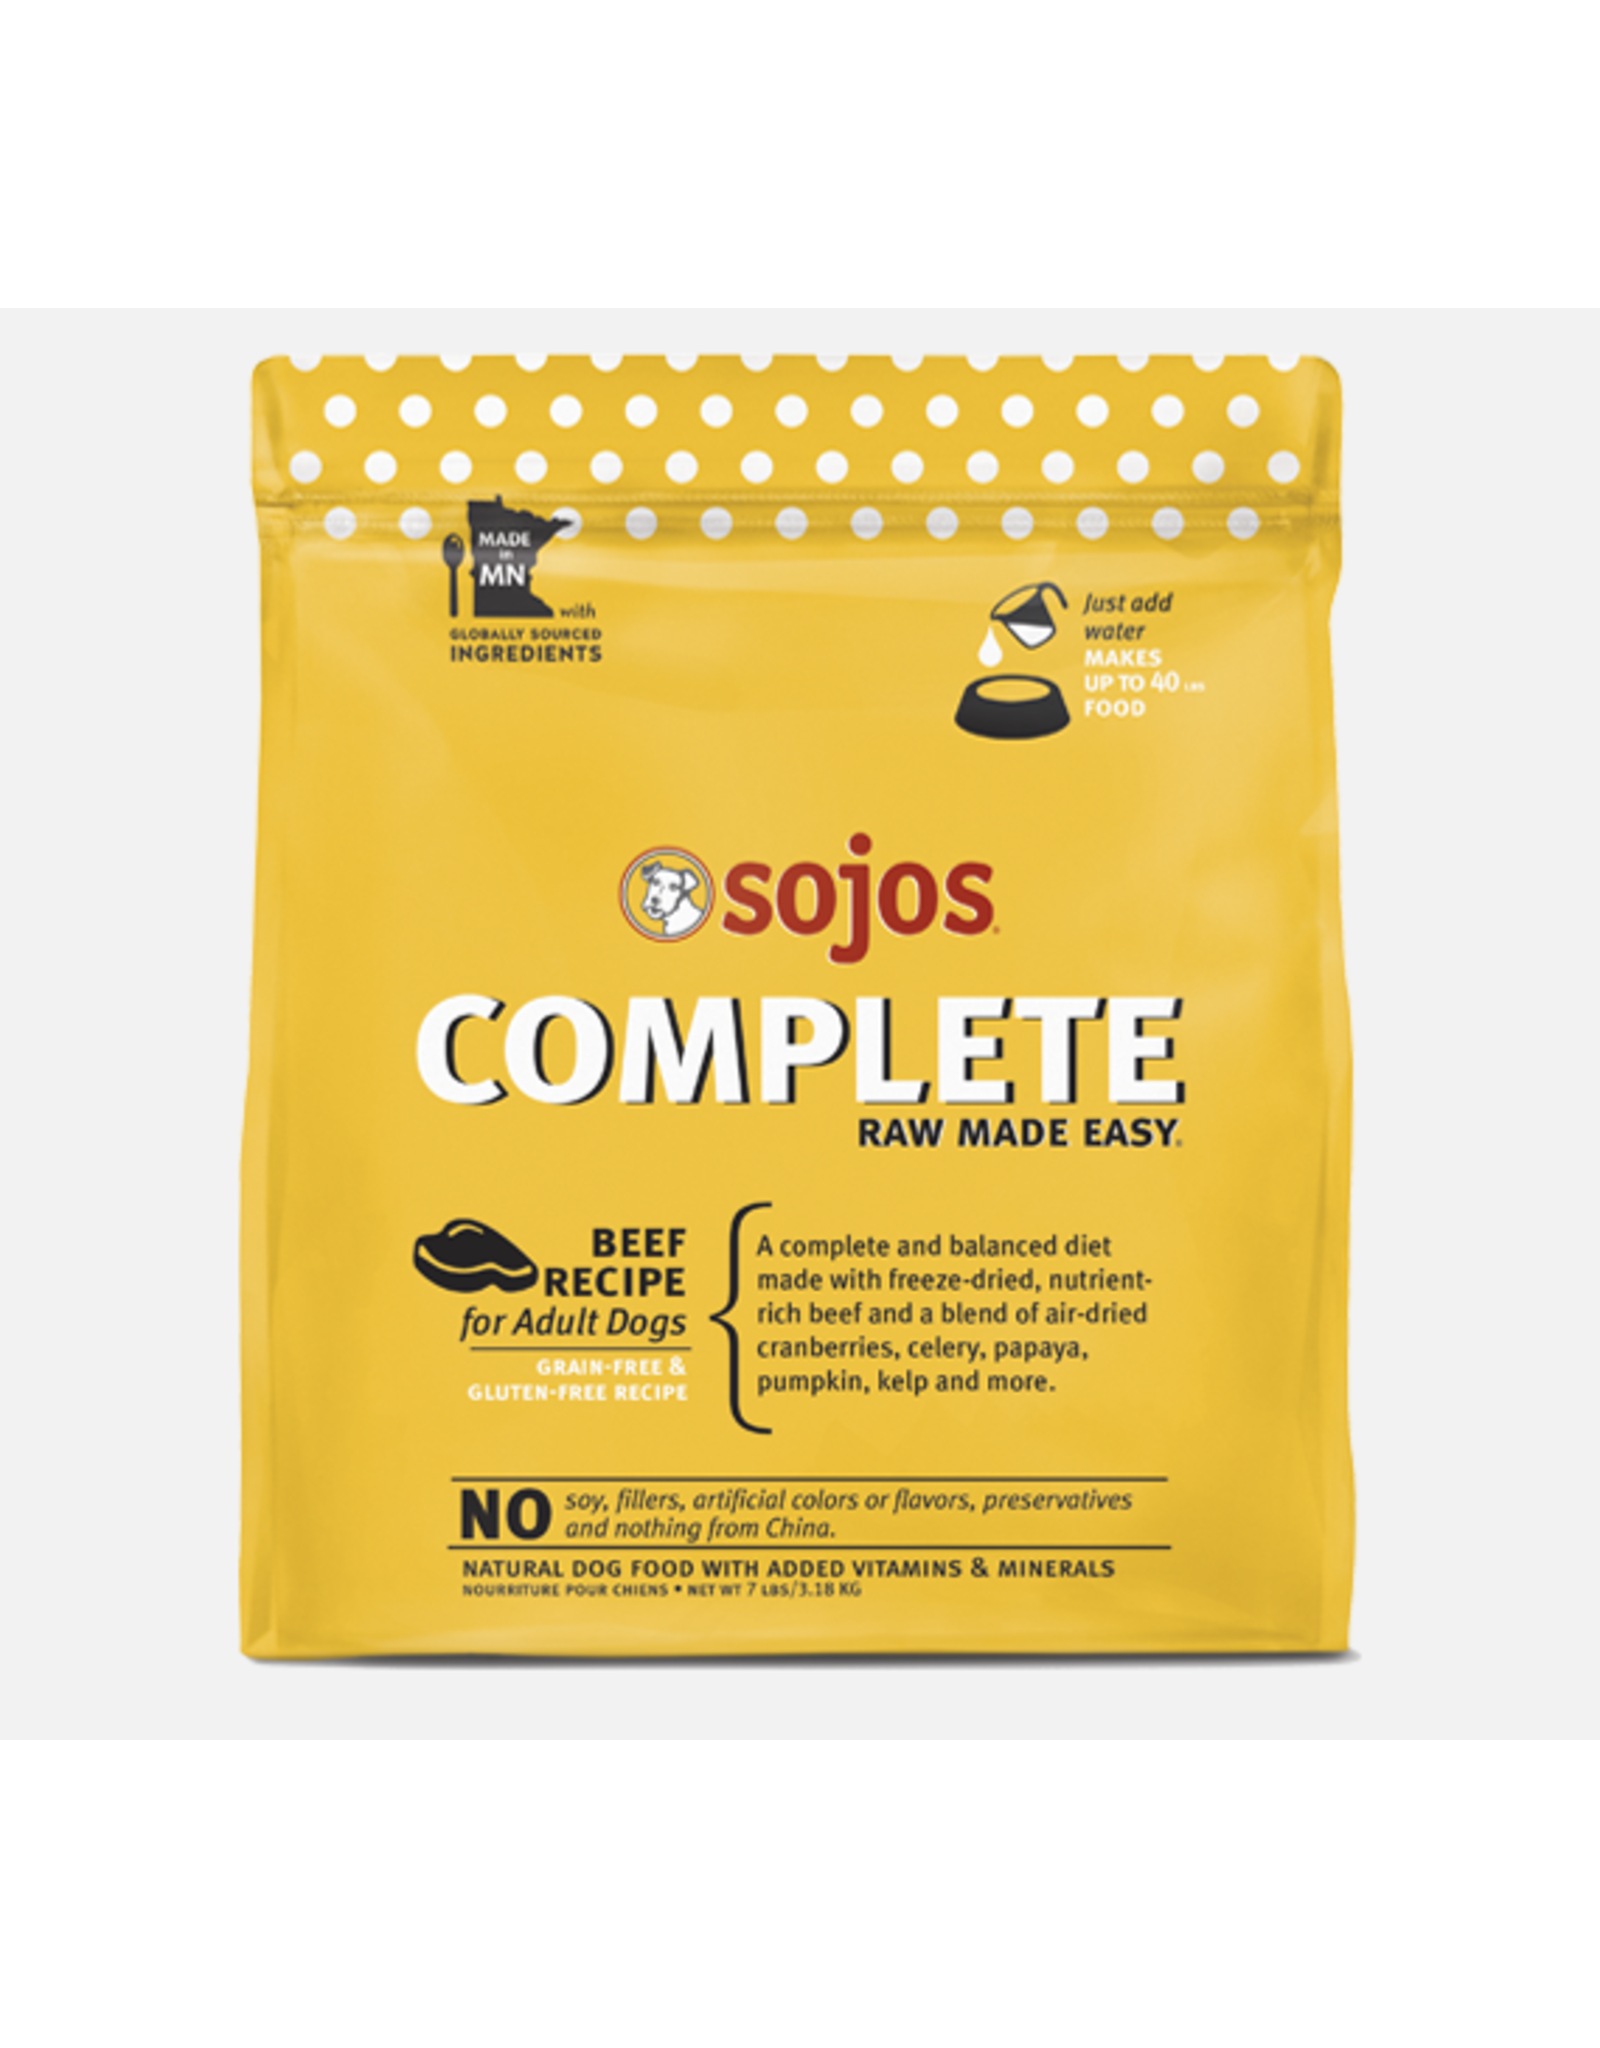 Sojos Sojos Complete Dog Food